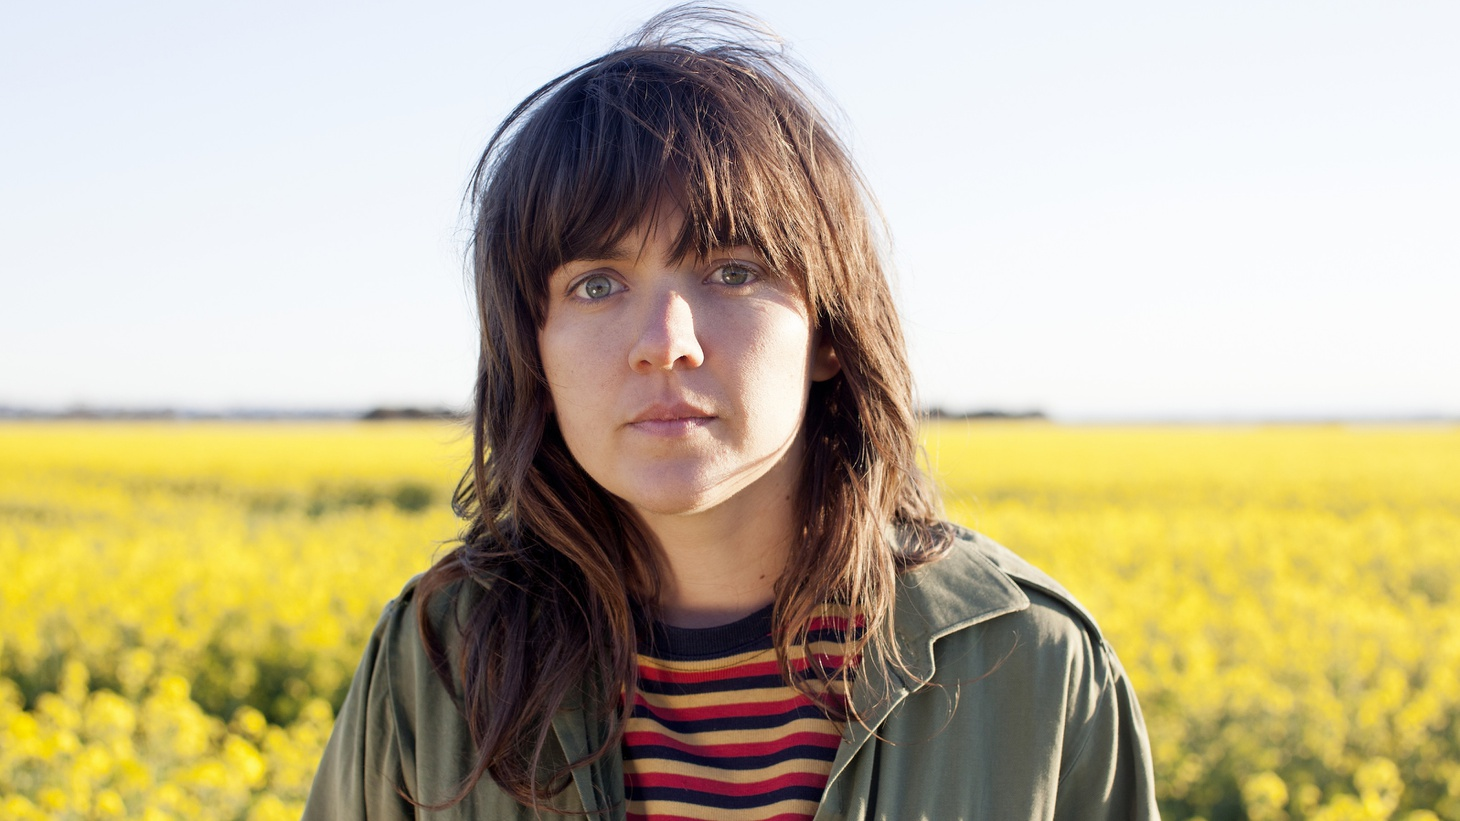 Raucous raw energy fuels Aussie singer and guitarist Courtney Barnett, who is one of the most buzzed about indie artists of the moment. We're thrilled to have her in studio to play songs from her new album.